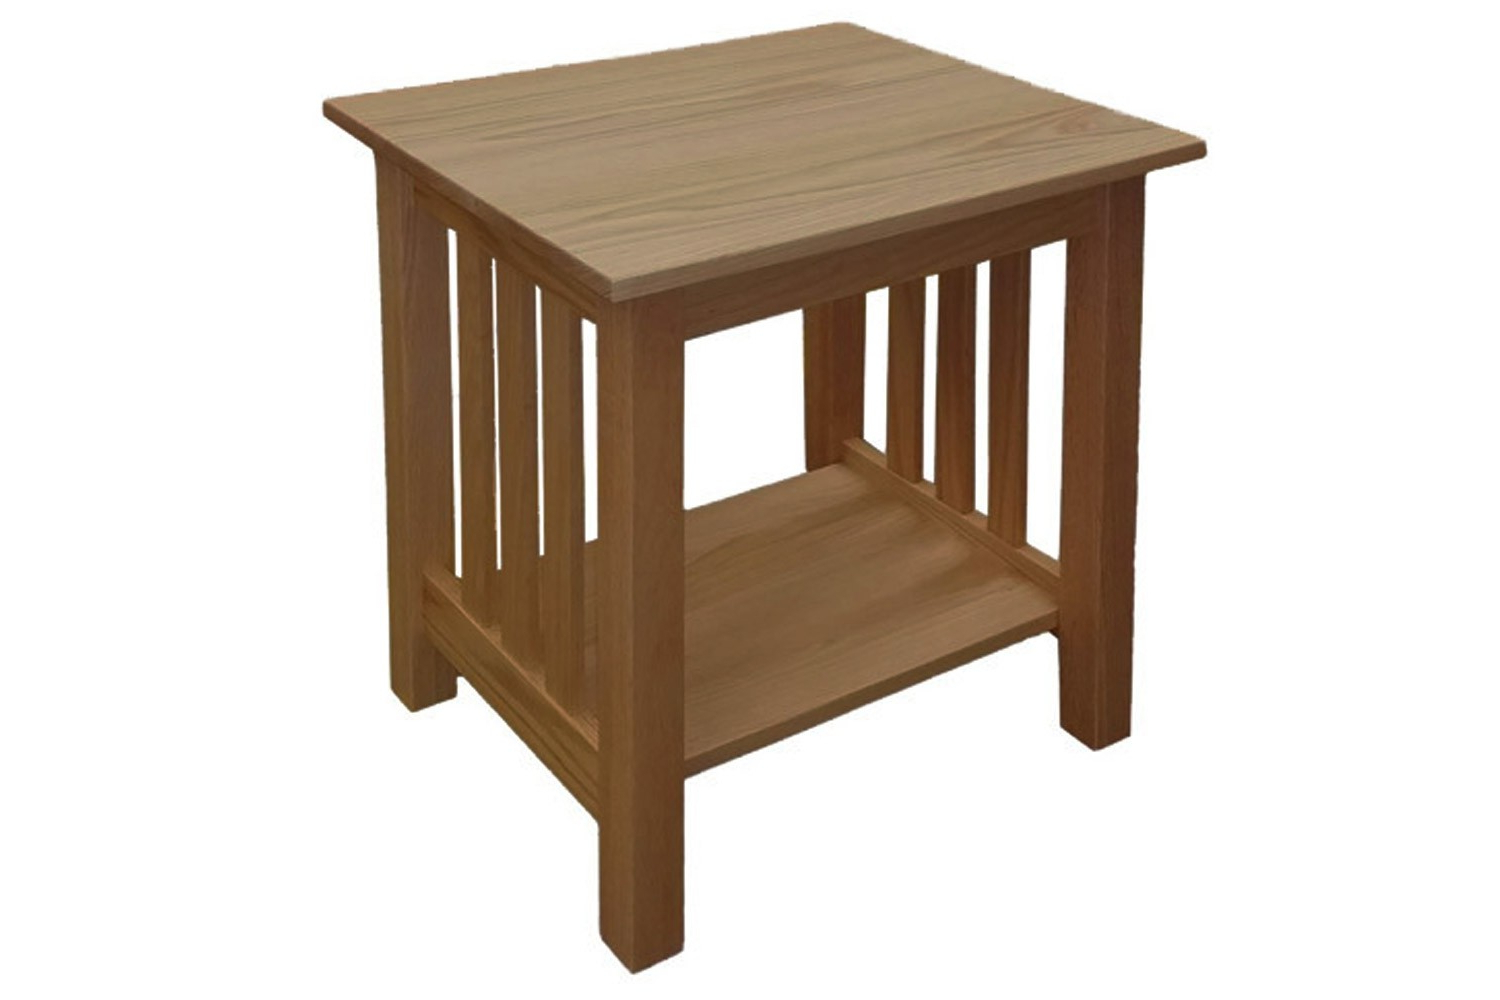 Solid Wood Chemical Free End Table With Regard To Latest Mission Walnut Coffee Tables (View 12 of 20)